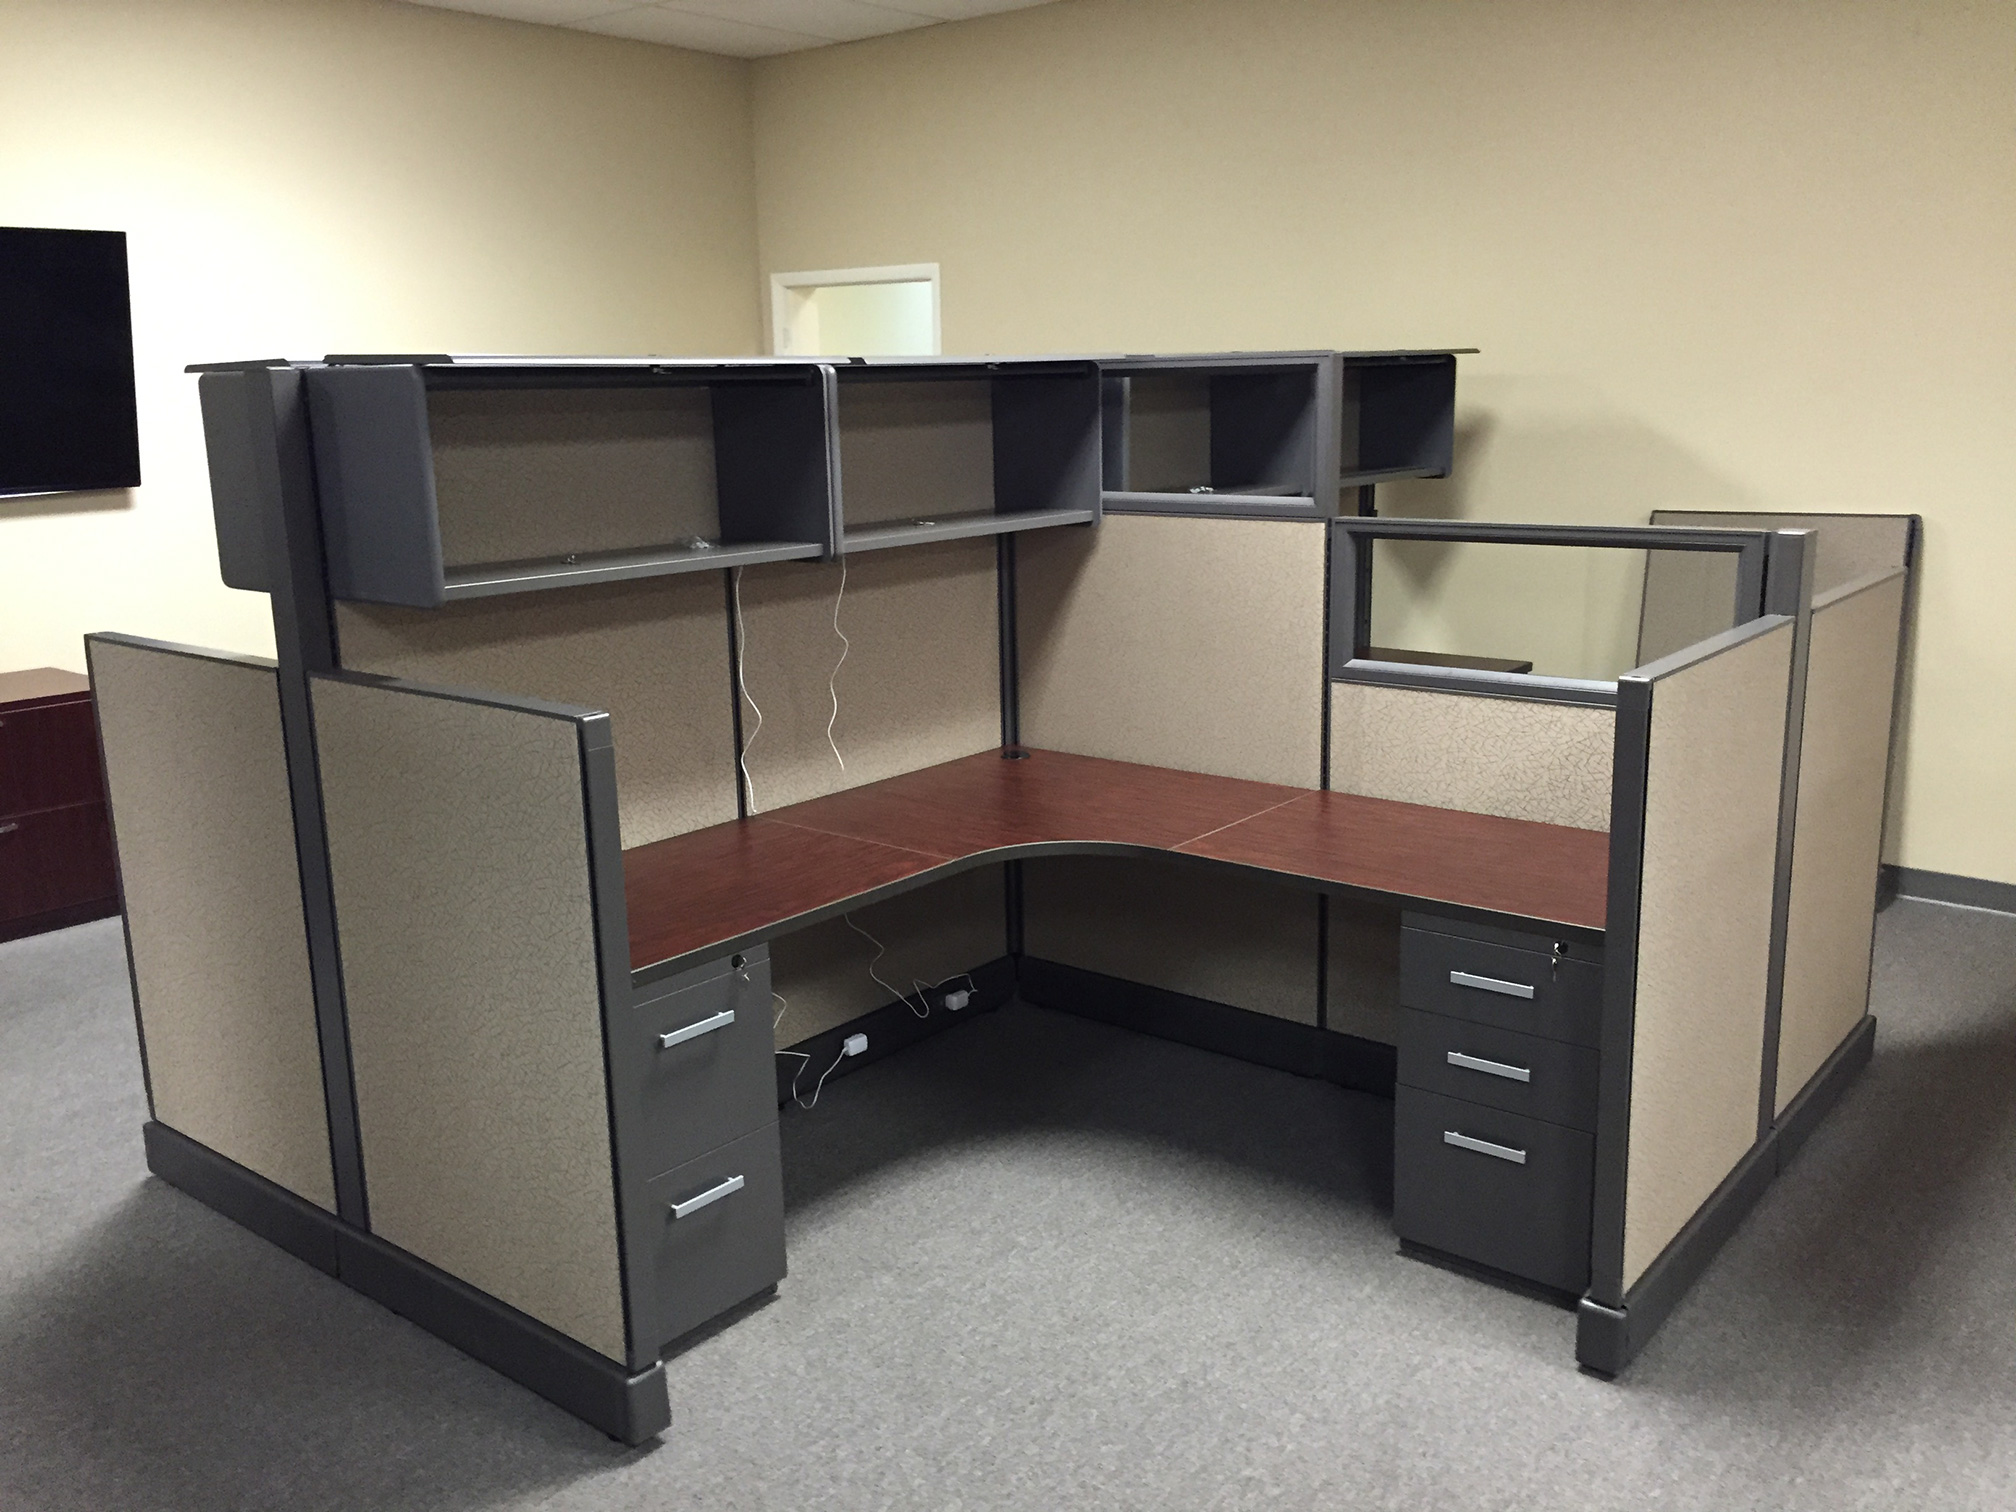 used-cubicle-design-manasota-office-supplies-llc.jpg